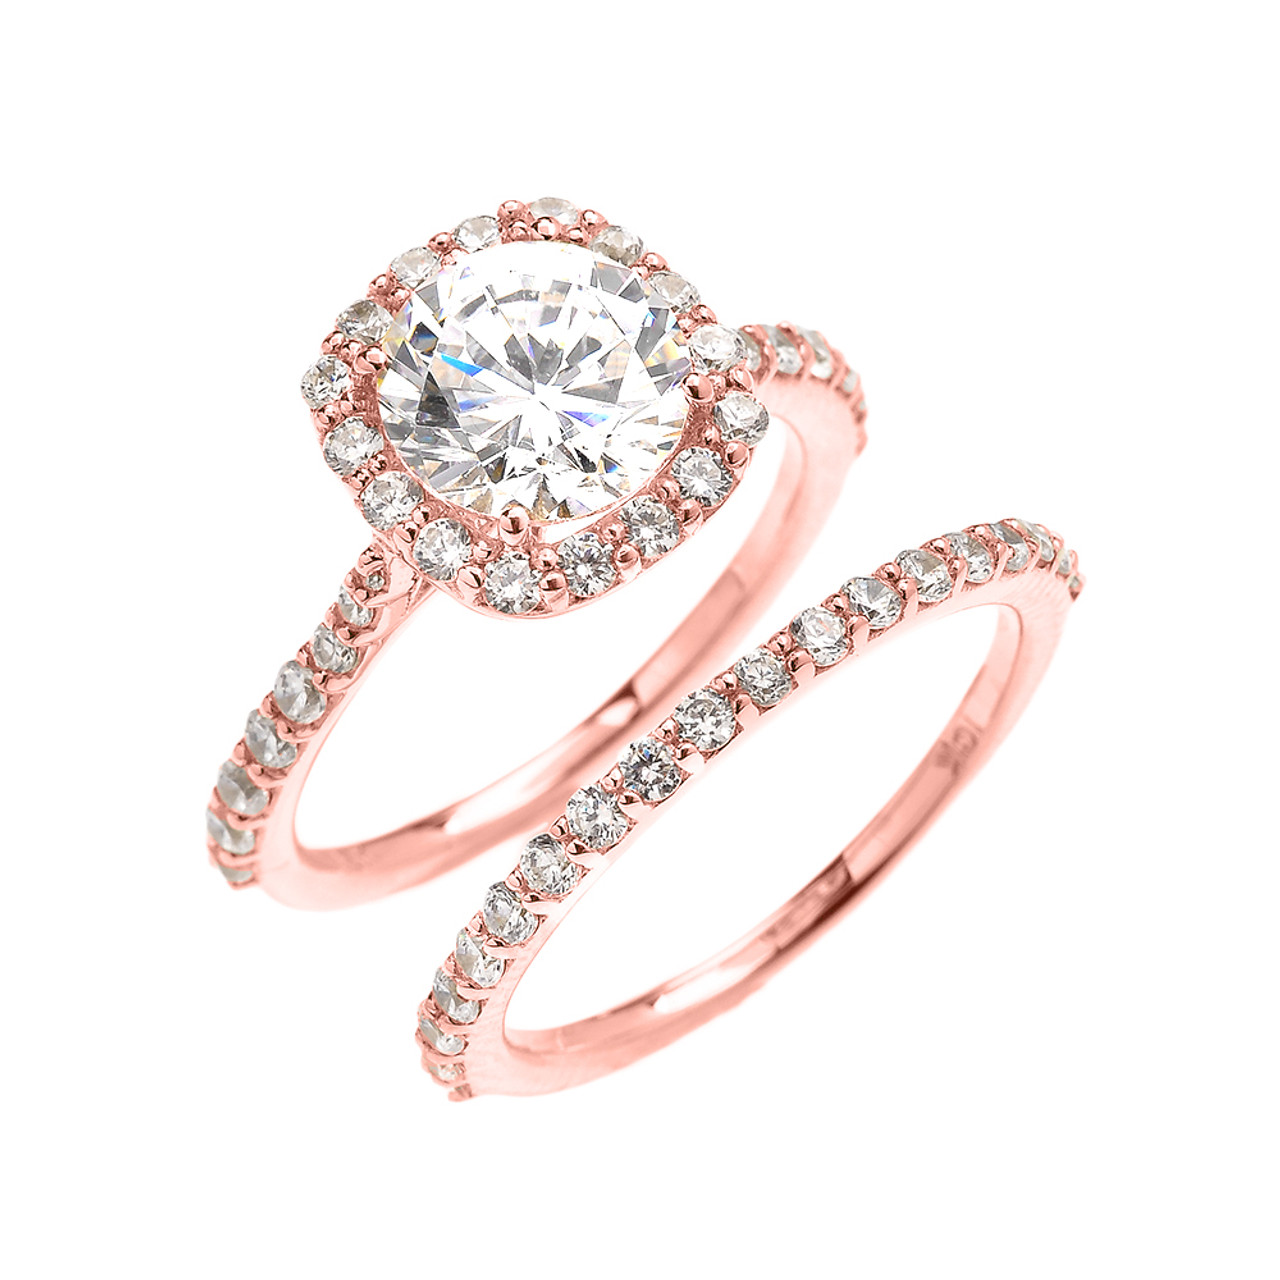 Lovely 10ct White Gold Engagement Cz Ring Other Fine Rings